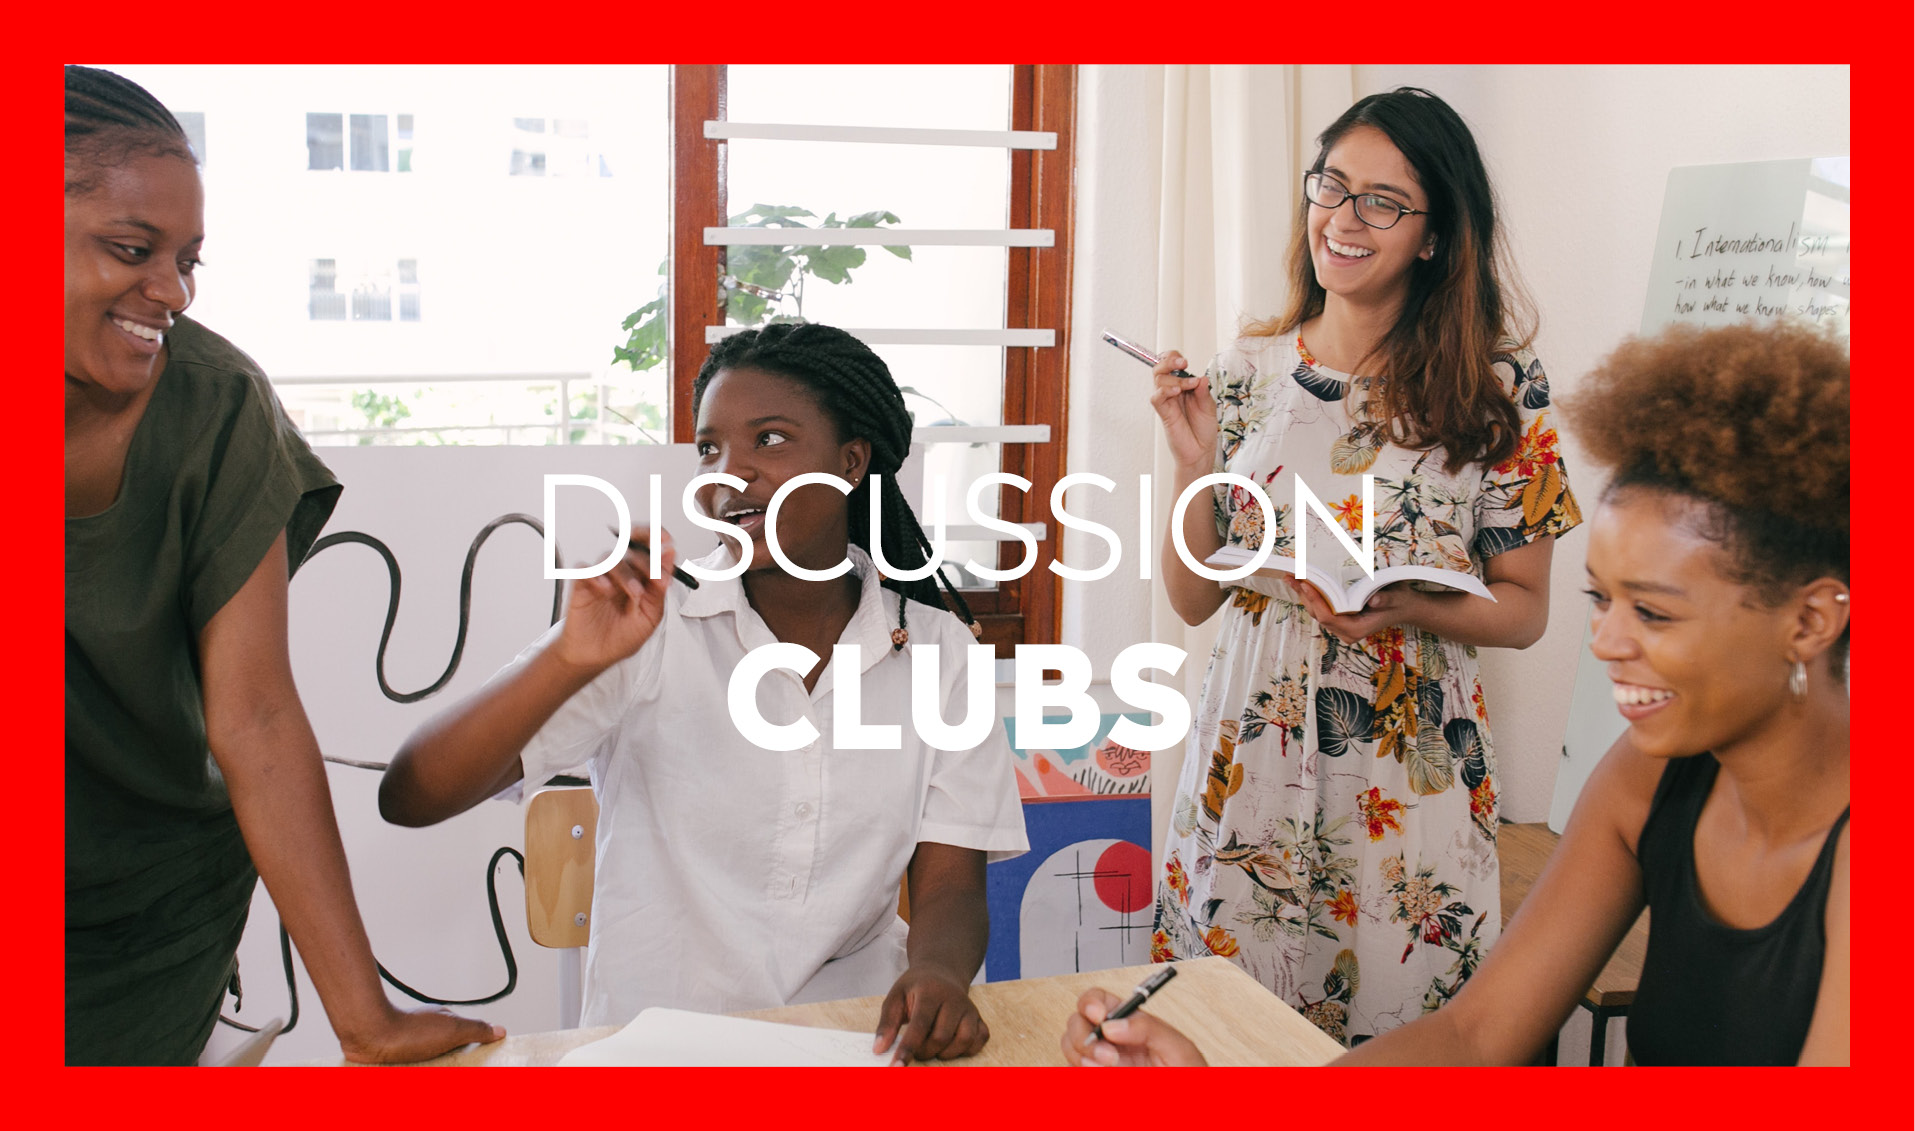 ★ Inscription Aux Clubs De Discussion ★ Deuxième Semestre